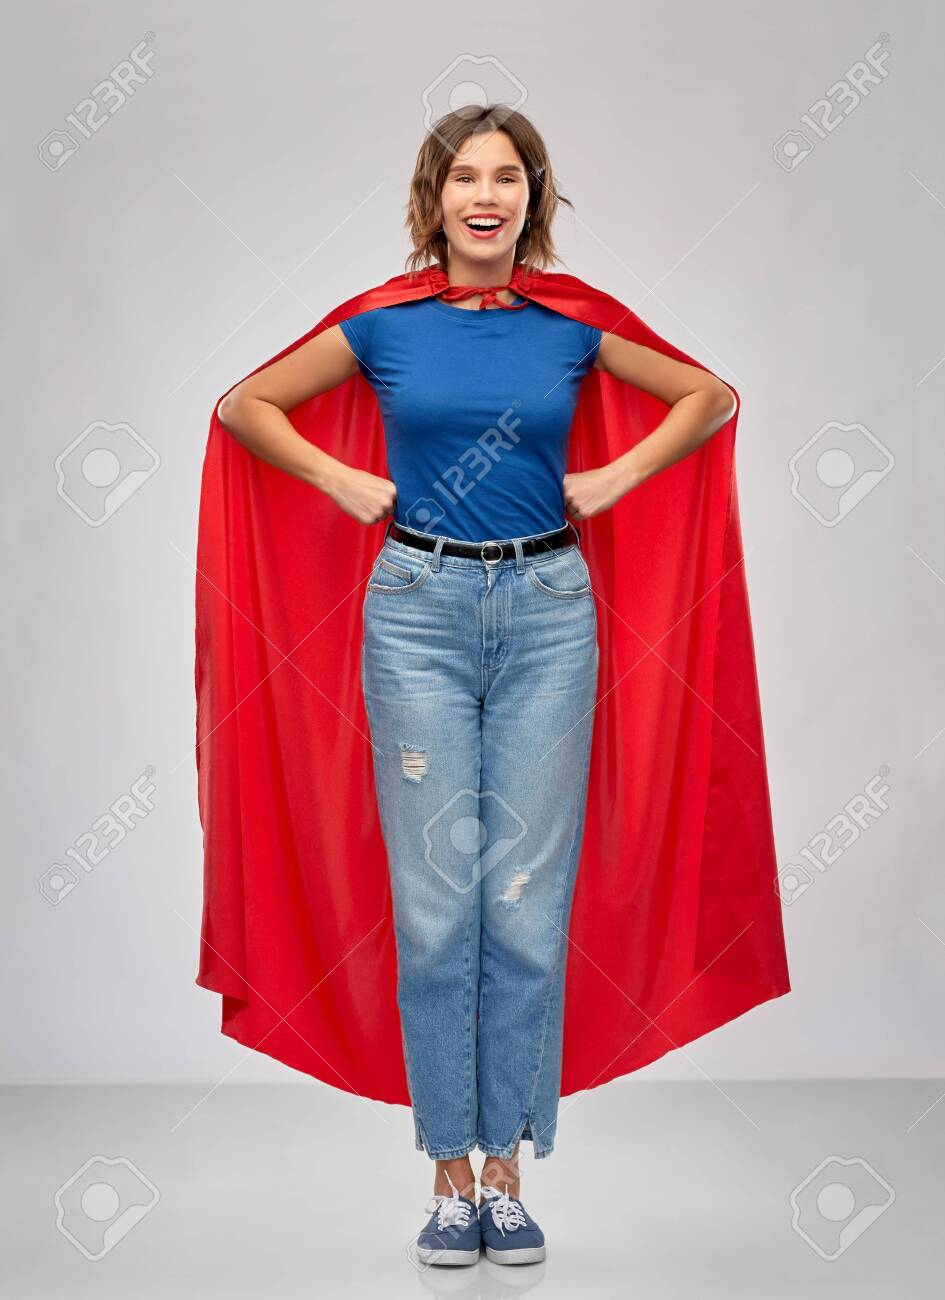 women's power and people concept - happy woman in red superhero cape over grey background - 132997226